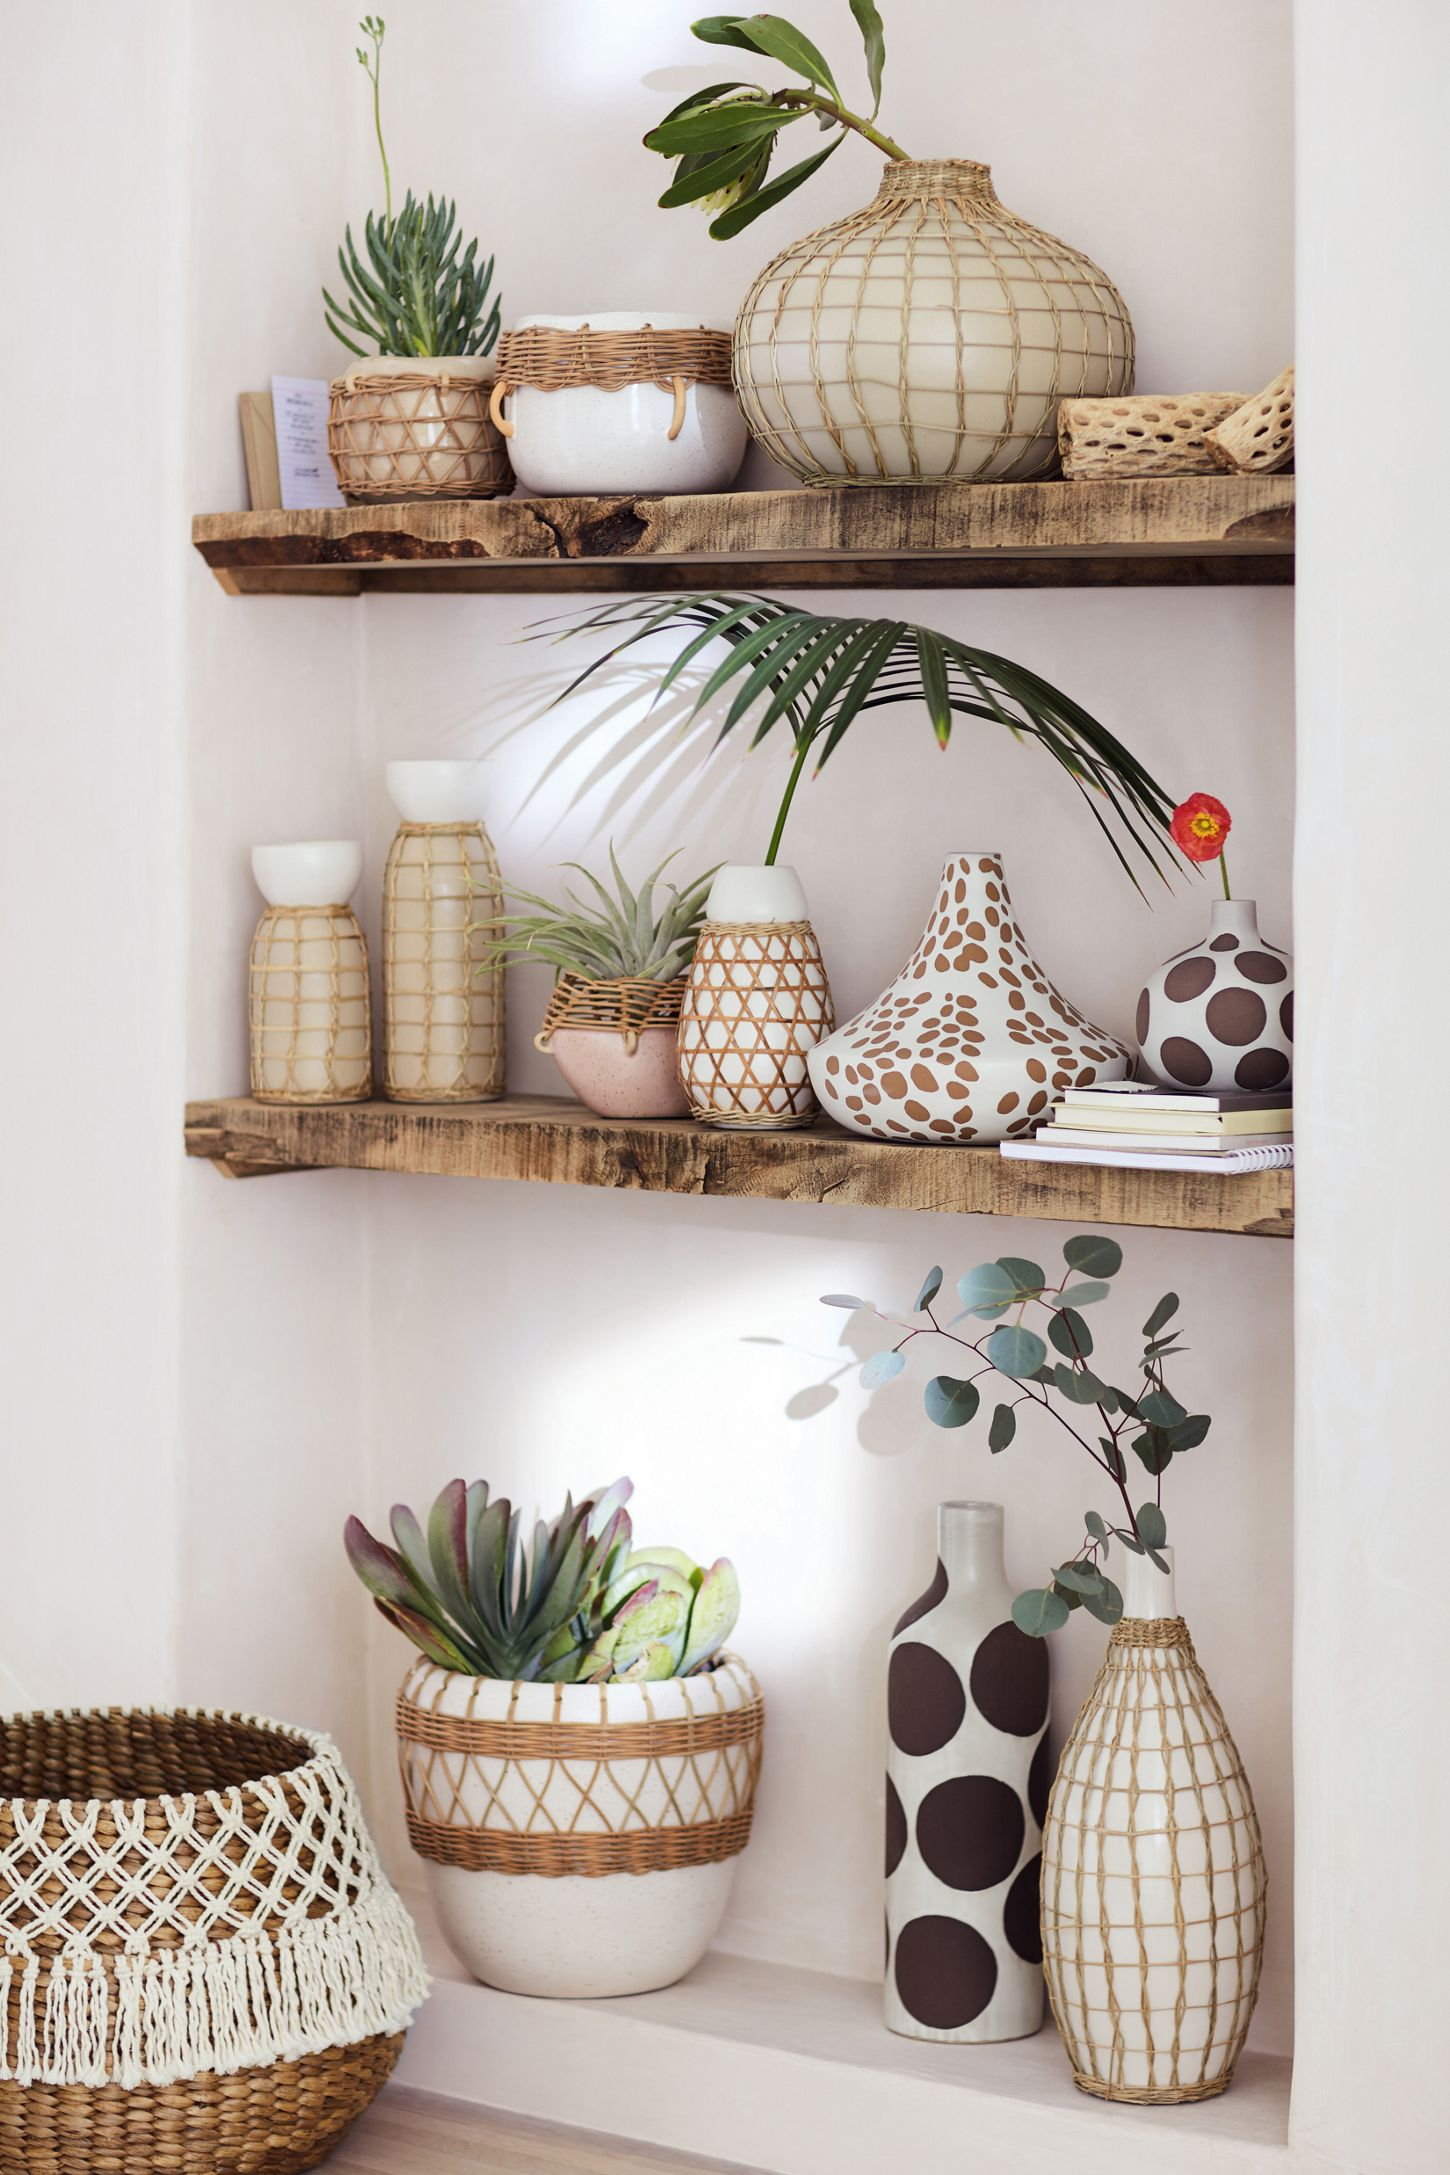 Sun Porch Pot - Top it off with a couple of these glazed earthenware pots since everything is better with plants.Source: Anthropologie